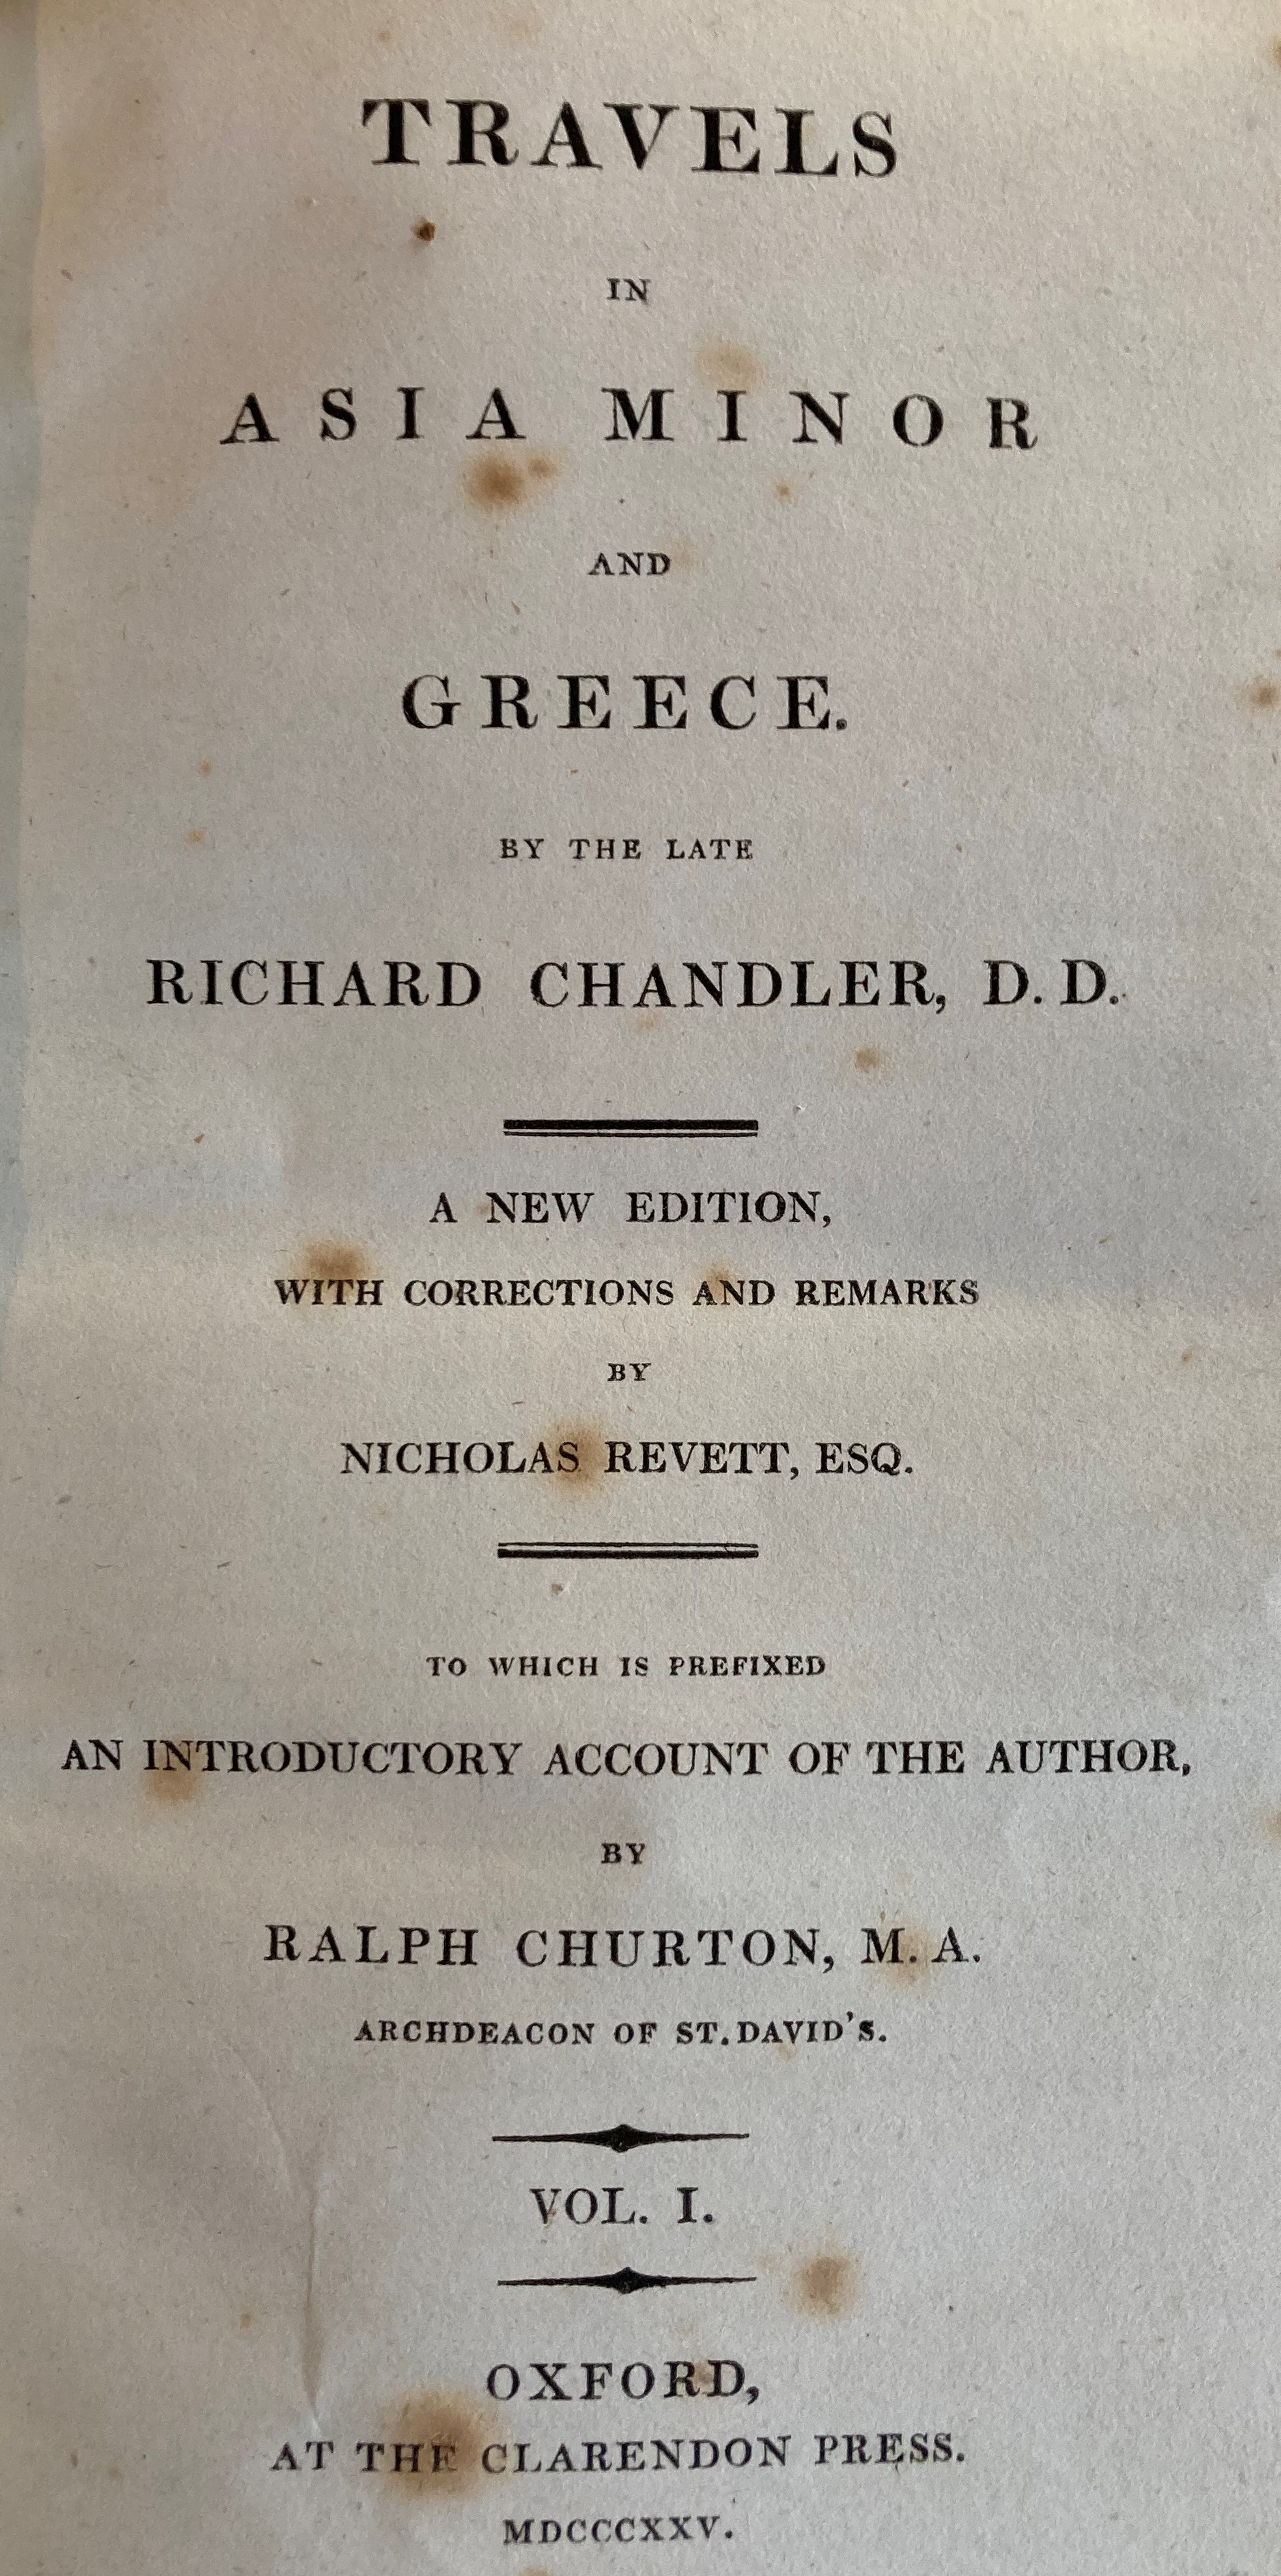 Chandler (Richard)ÿTravels in Asia Minor and Greece, 2 vols. Oxford (Clarendon Press) 1825.ÿNew - Image 2 of 3